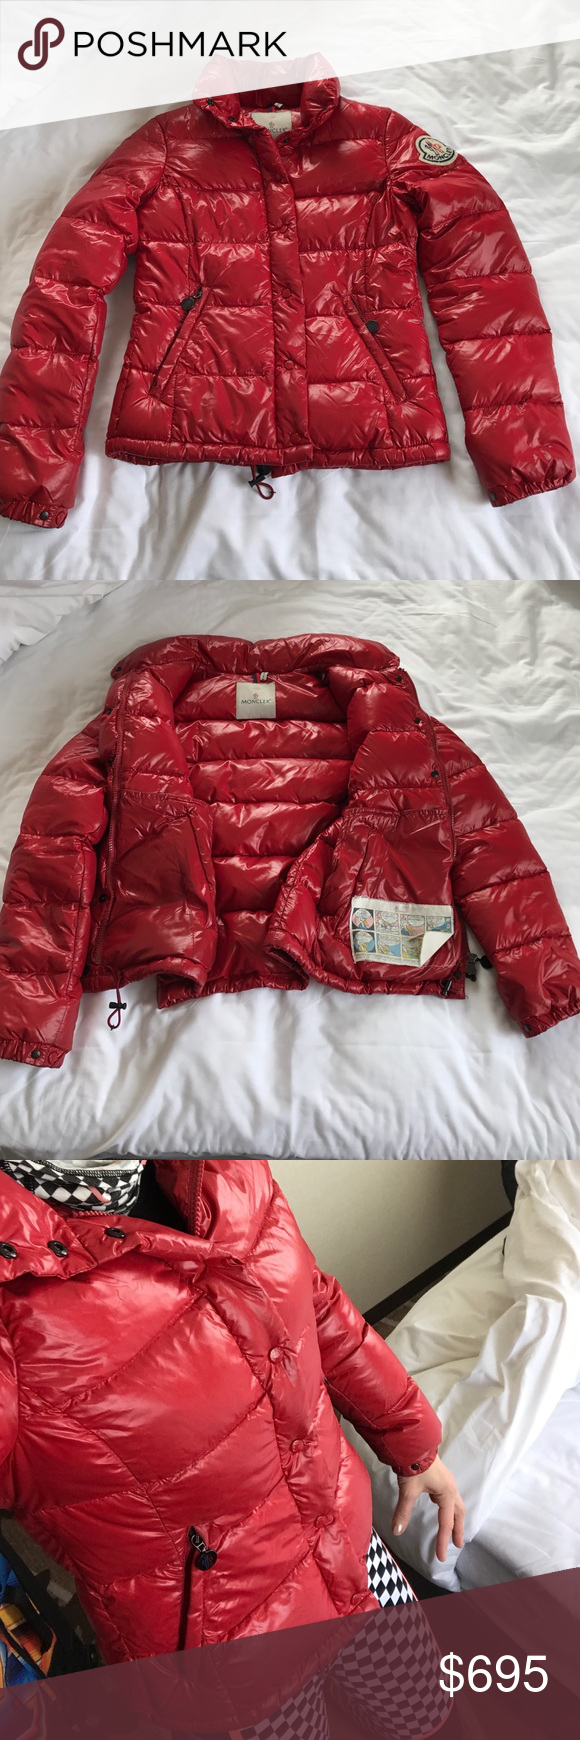 "Authentic moncler down red jacket Authentic moncler down red jacket, purchased from Bloomingdales , size 0 which is xs . Has a 1/2"" opening on a side seam but was repaired and otherwise in great condition , pics of all sides/entire jacket are shown Moncler Jackets & Coats Puffers"